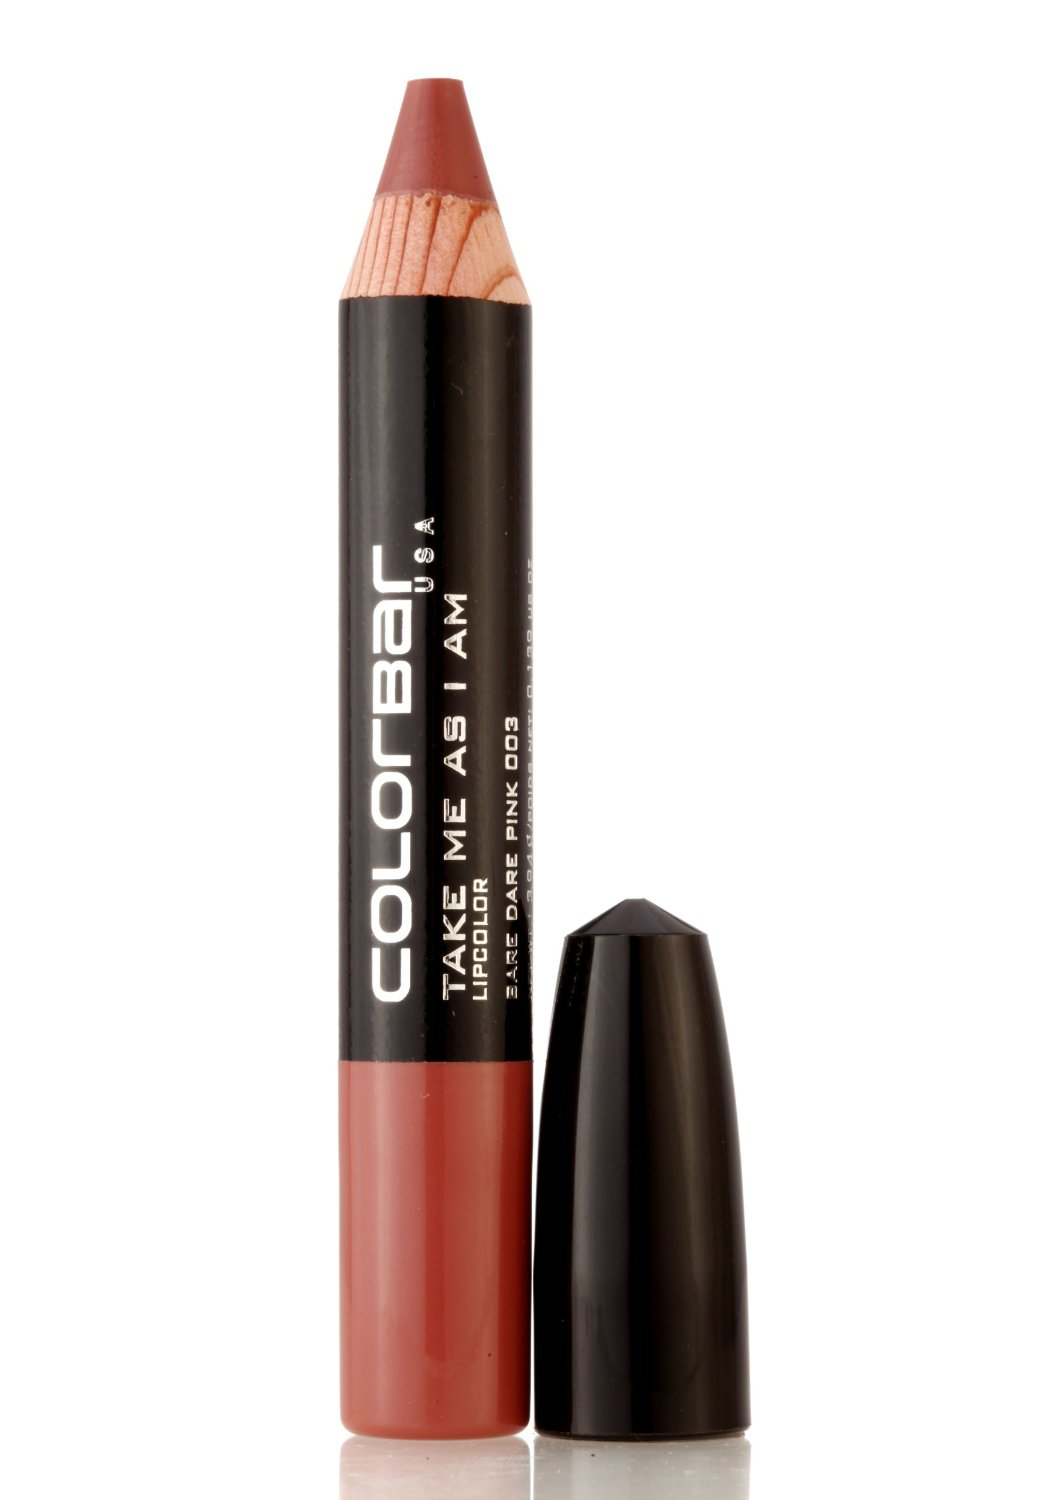 Top 12 Nude Lipsticks for Different Indian Skin Tones